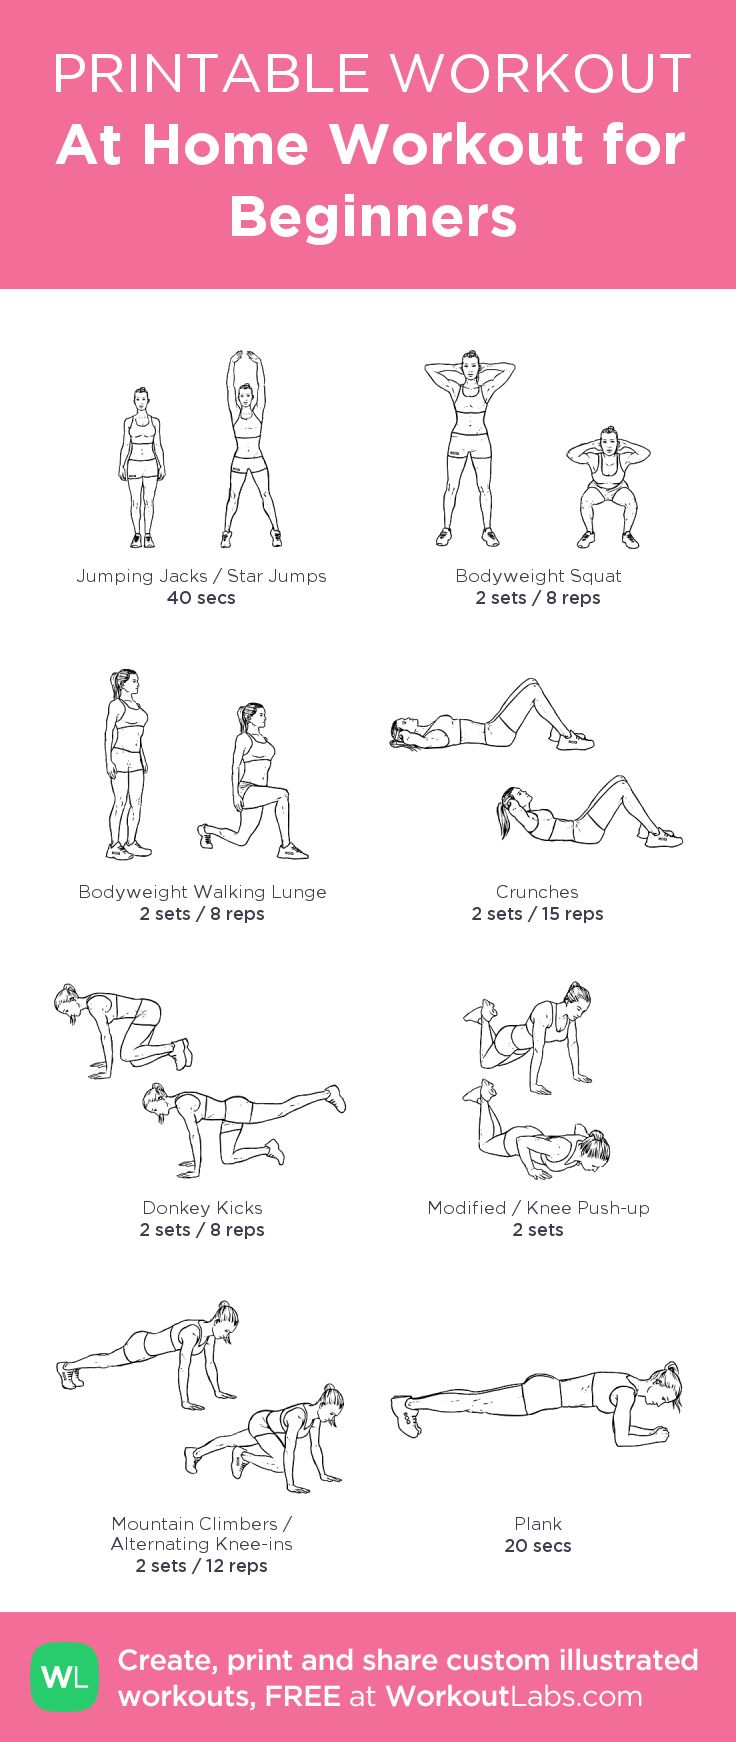 At Home Workout for Beginners – my custom workout created at WorkoutLabs.com • Click through to download as printable PDF! #customworkout